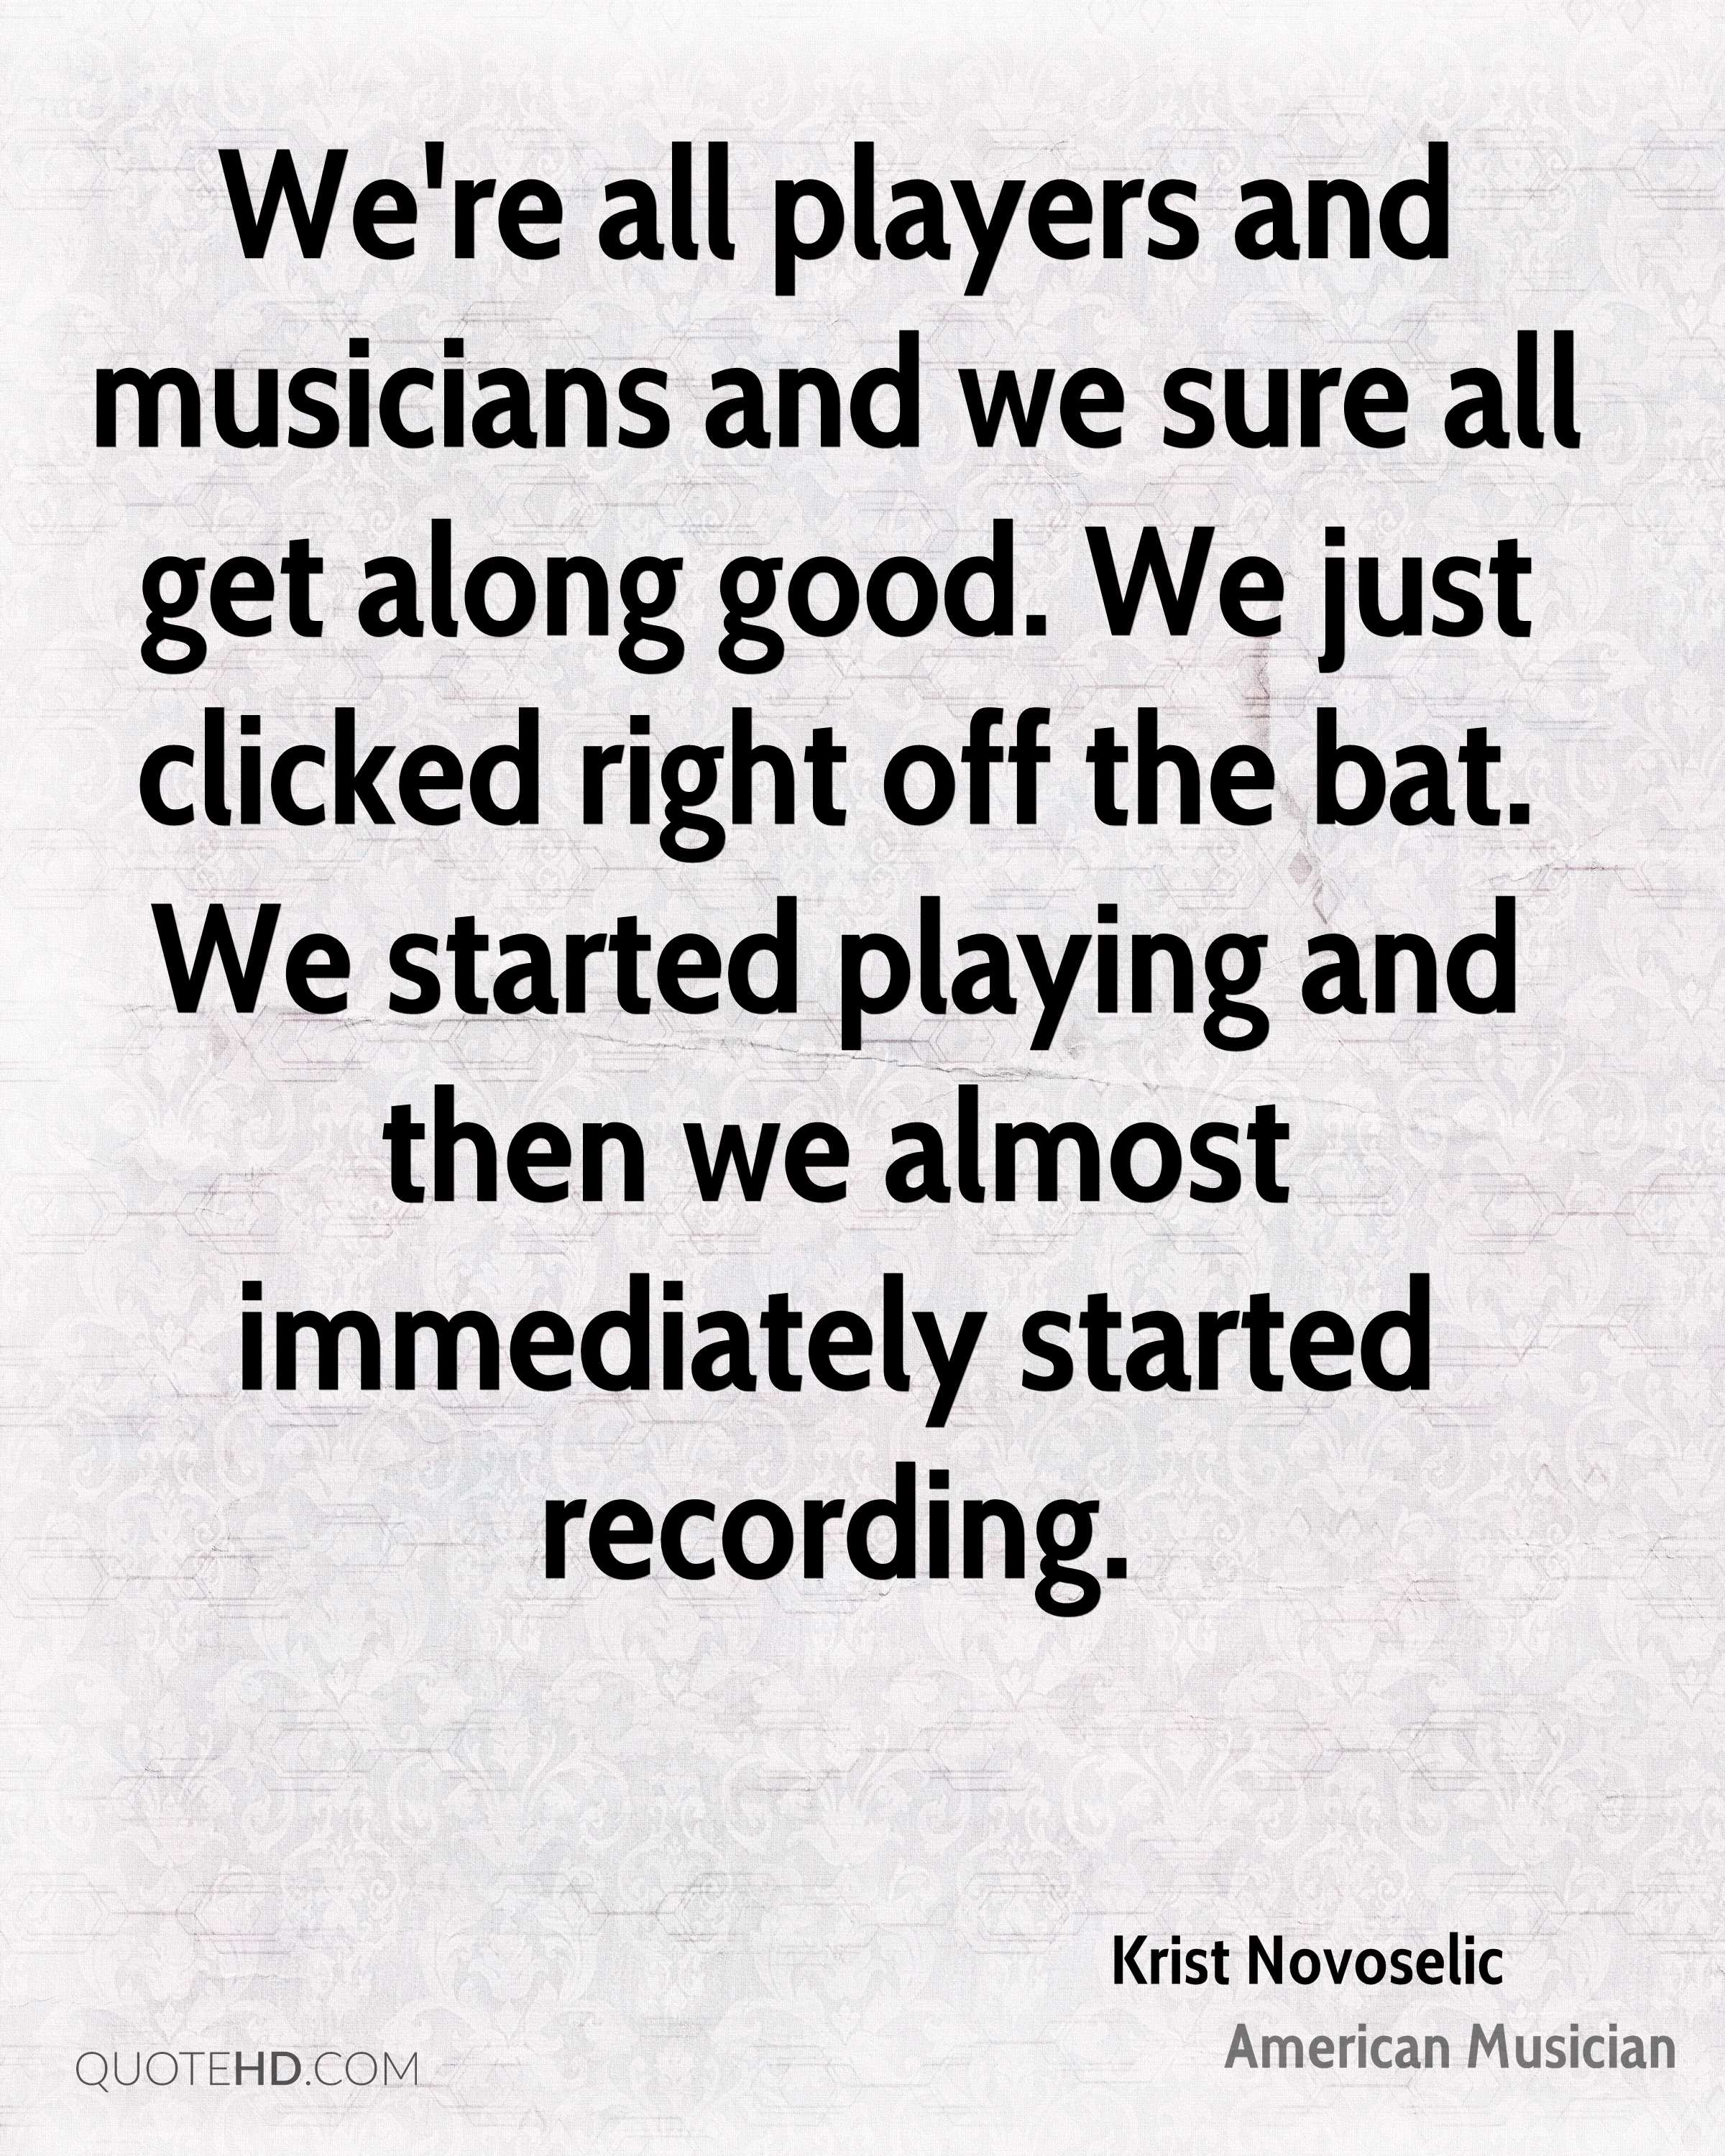 We're all players and musicians and we sure all get along good. We just clicked right off the bat. We started playing and then we almost immediately started recording.